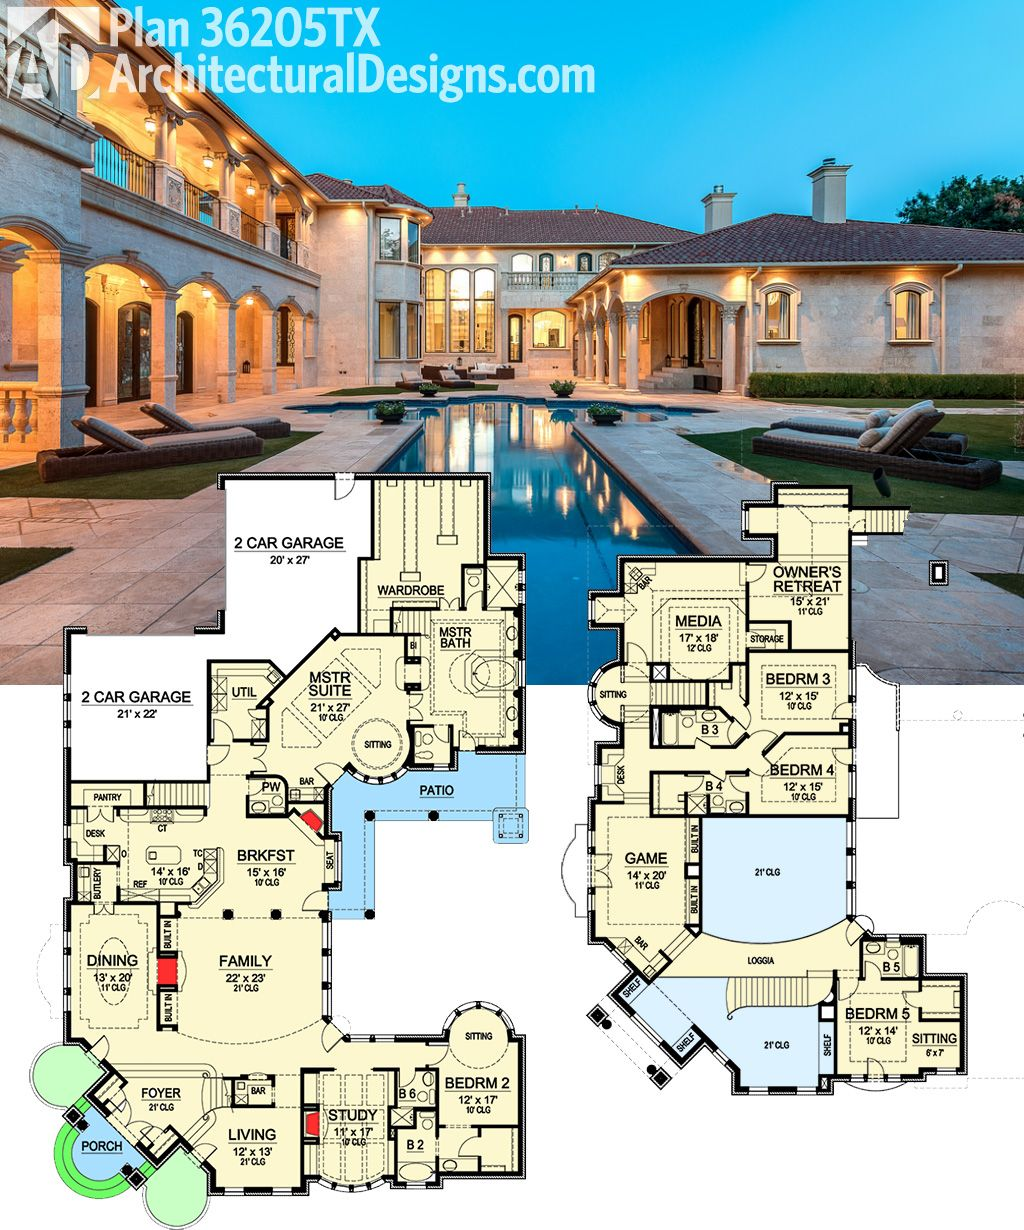 luxury home floorplans architectural designs luxury house plan 36205tx gives you 14077